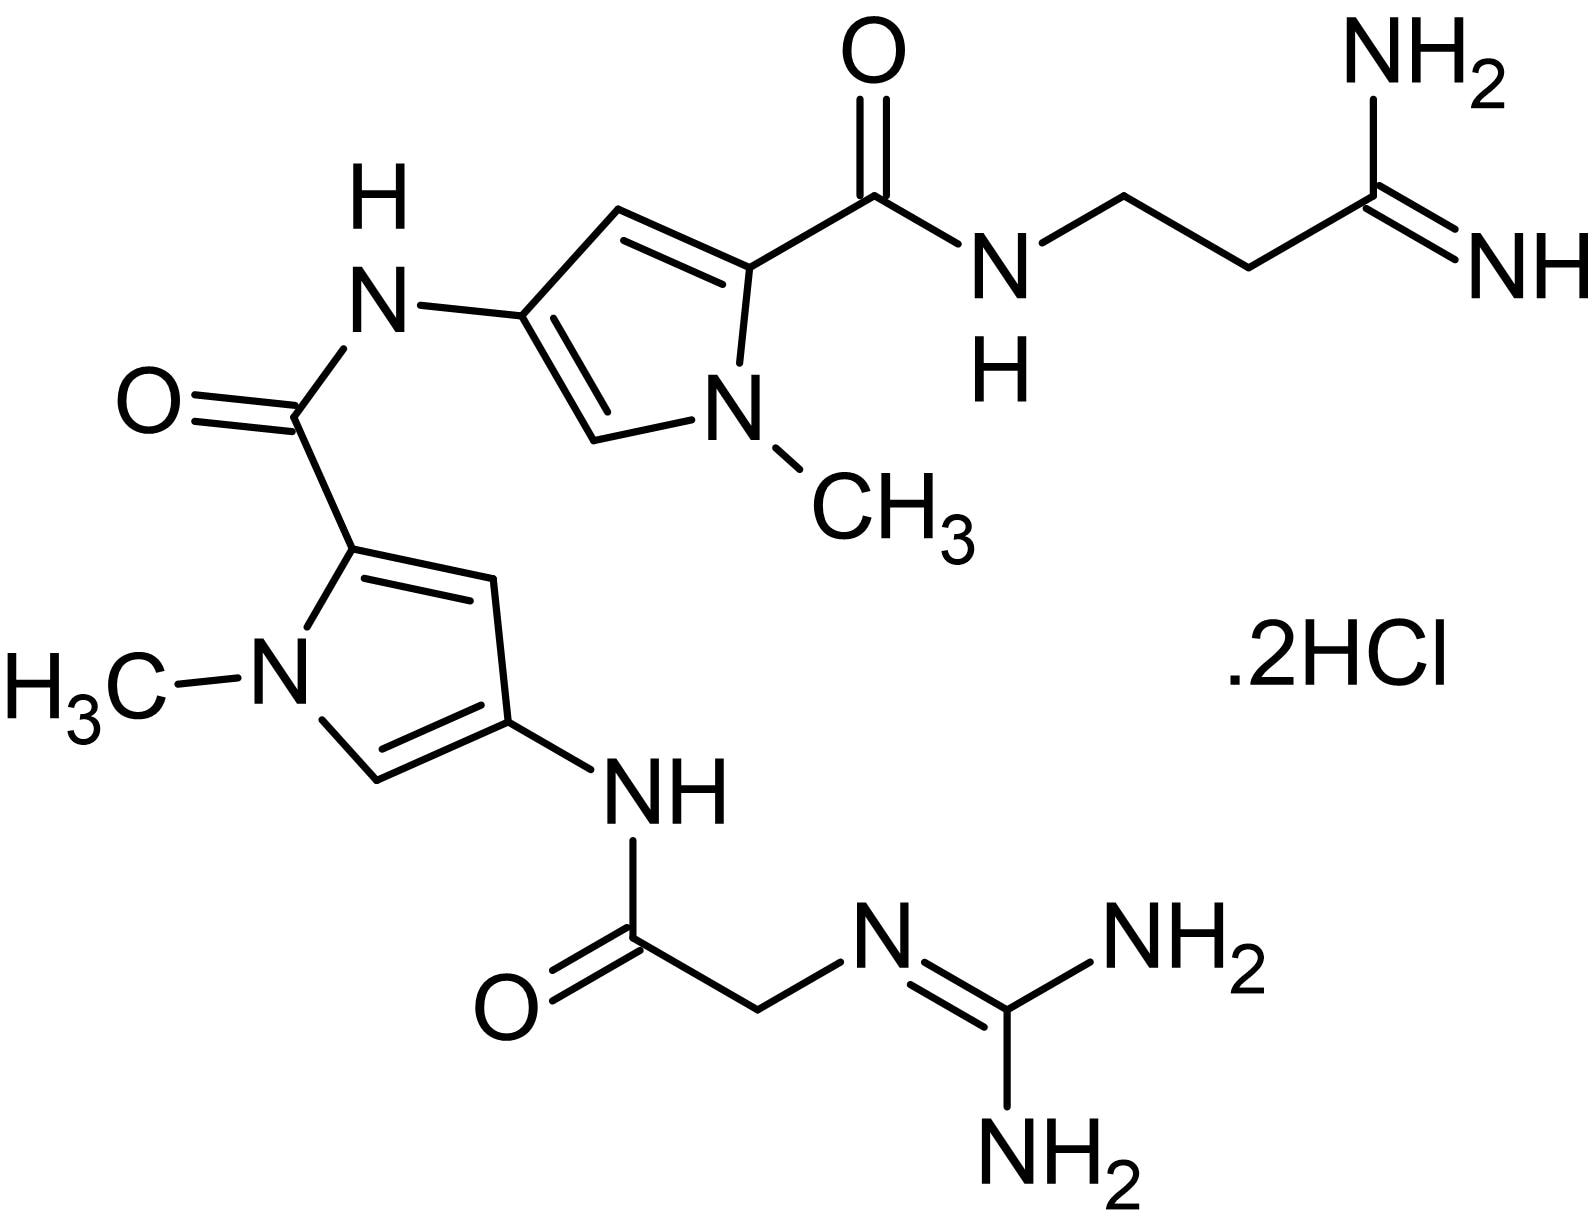 Chemical Structure - Netropsin dihydrochloride, DNA minor groove binding ligand (ab146342)